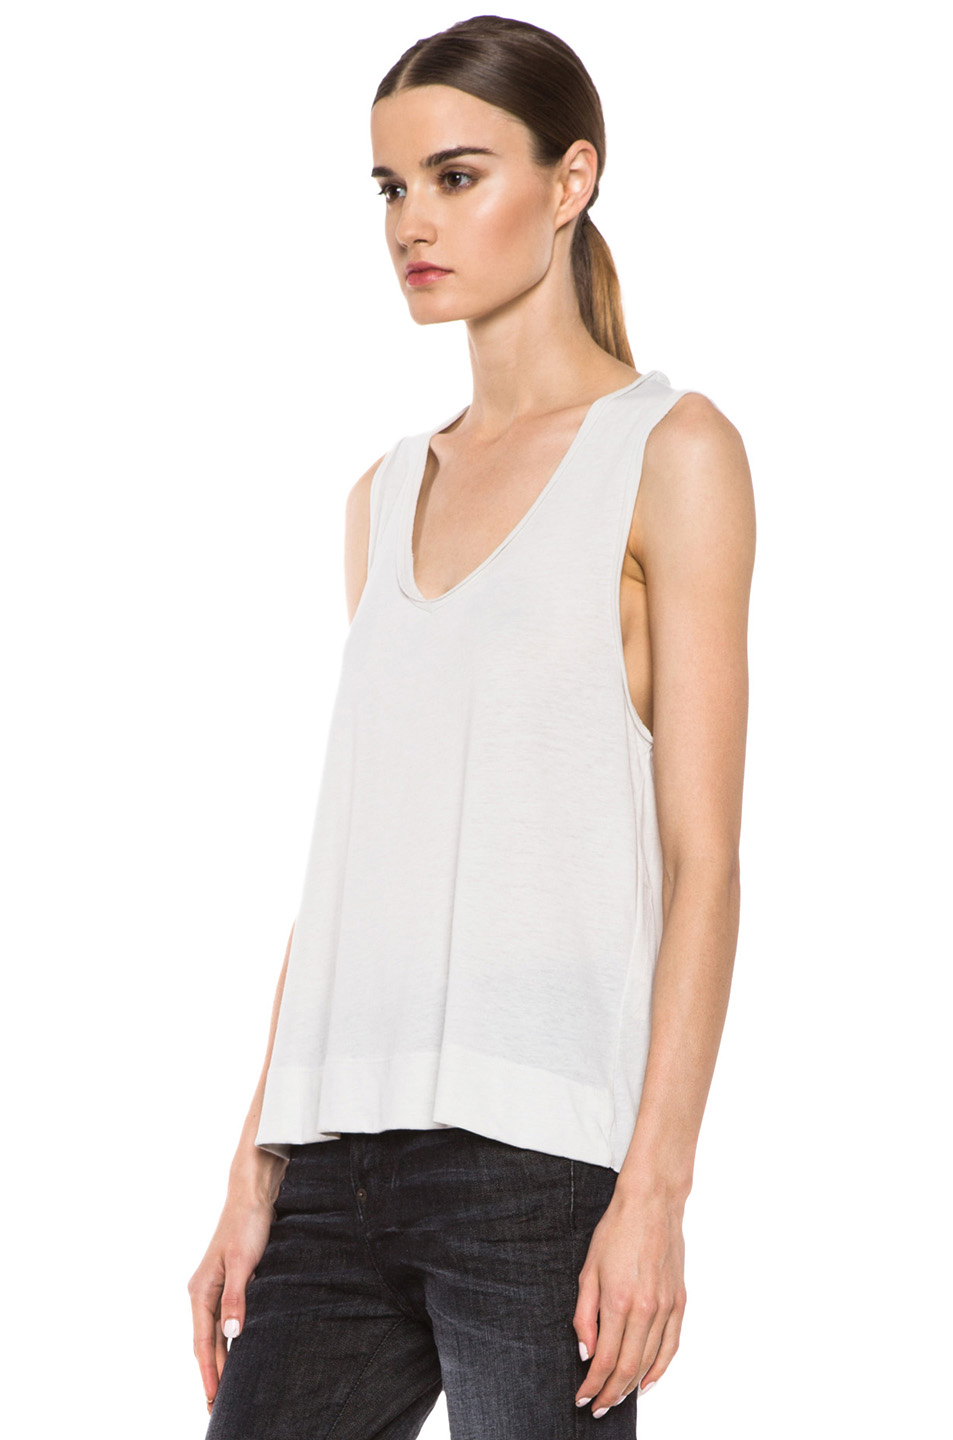 Raquel Allegra|Deconstructed Jersey V Tee in Dirty White